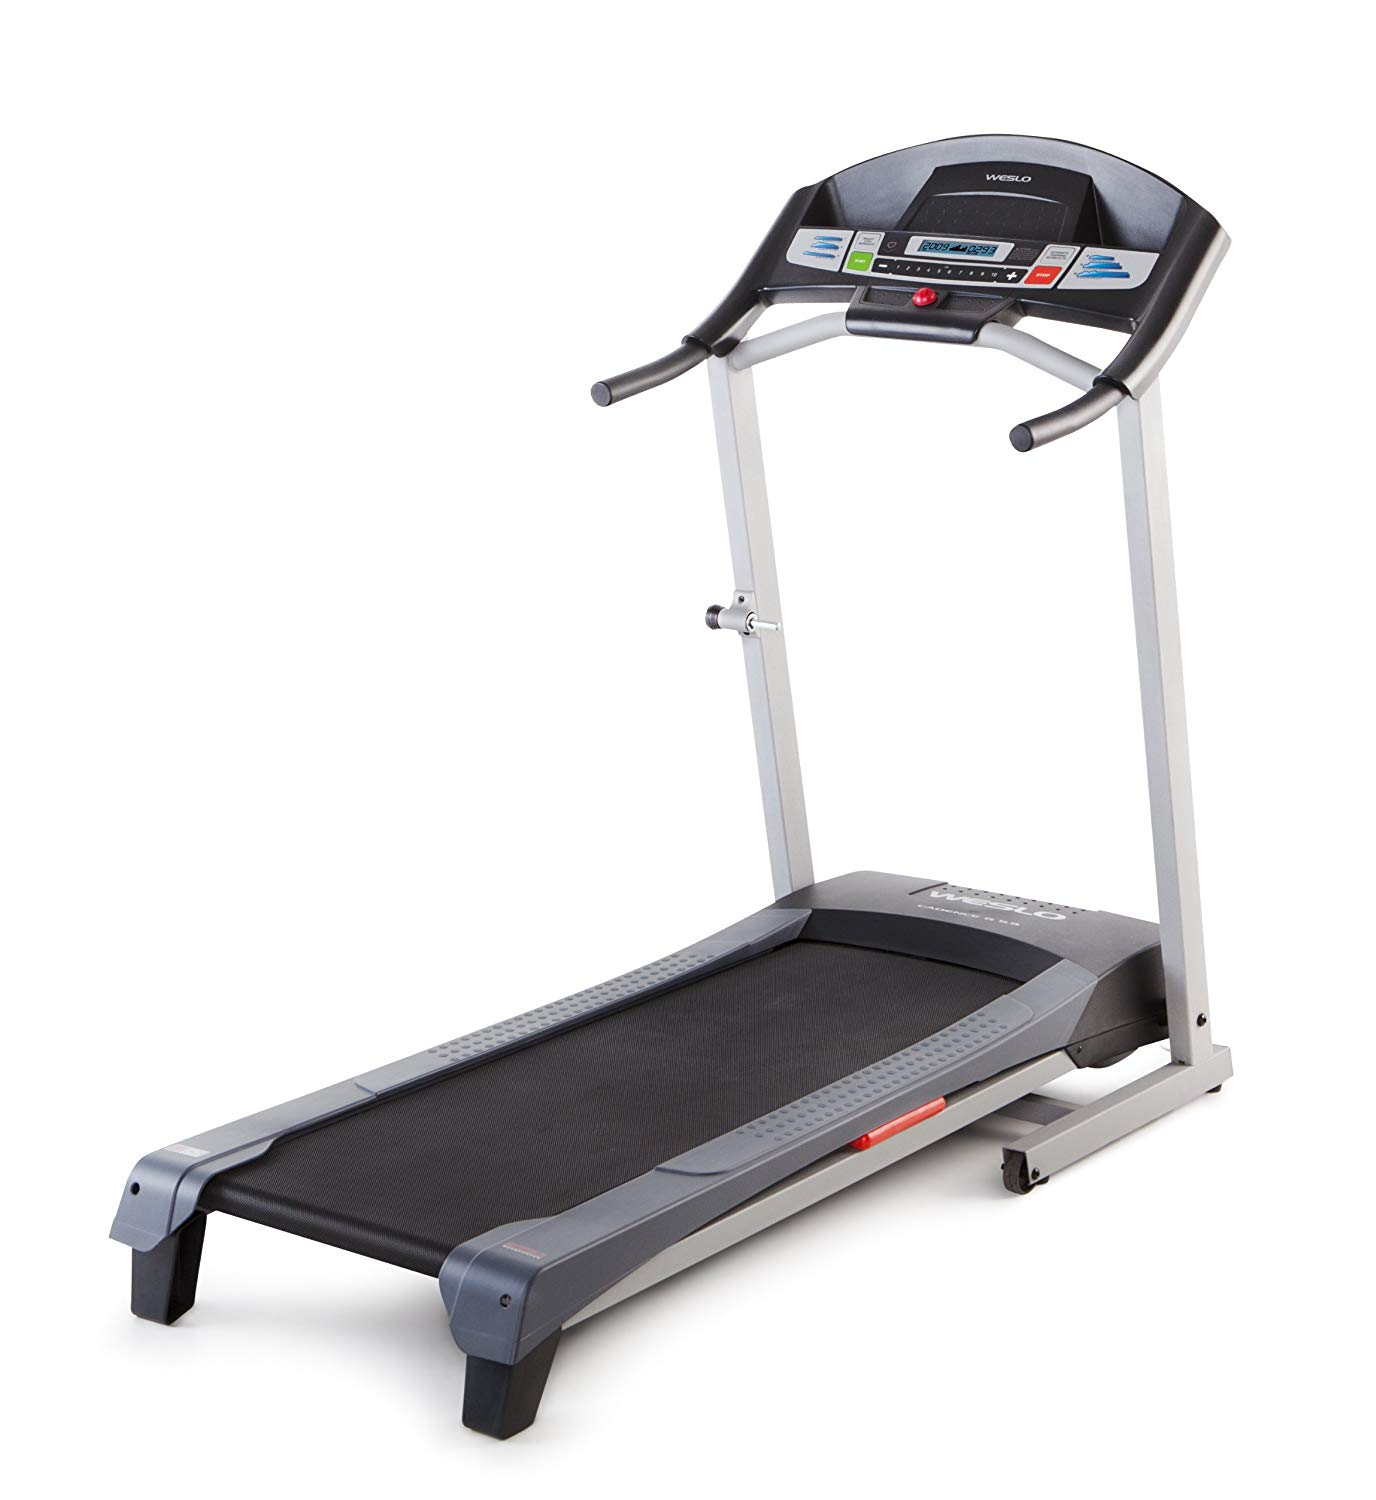 product photo of a Treadmill